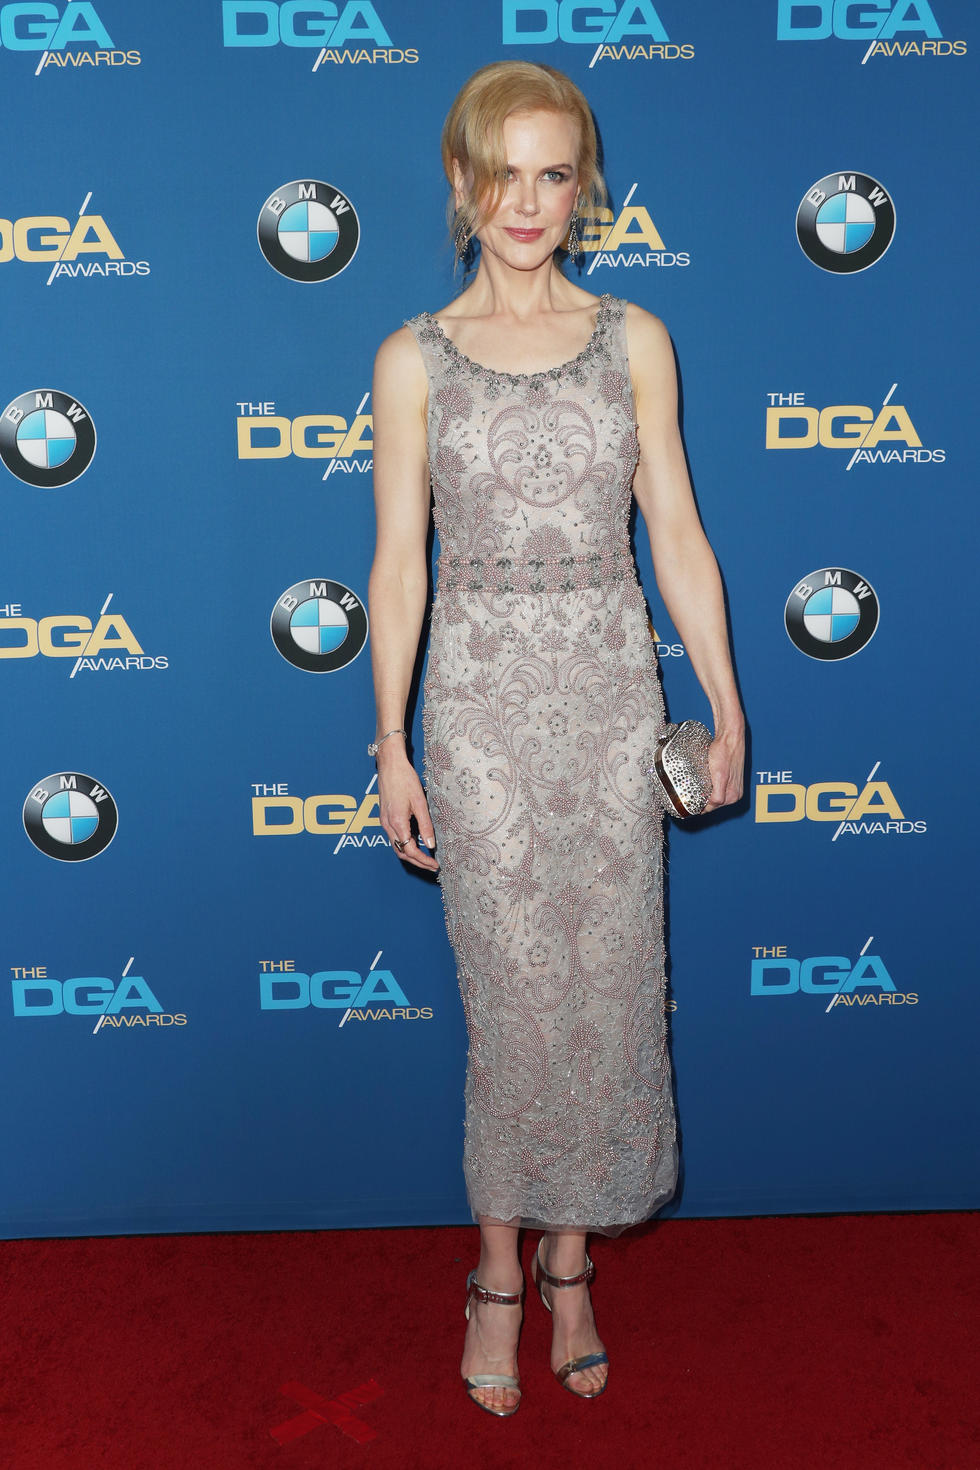 Best supporting actress nominee at The Directors Guild of America Awards